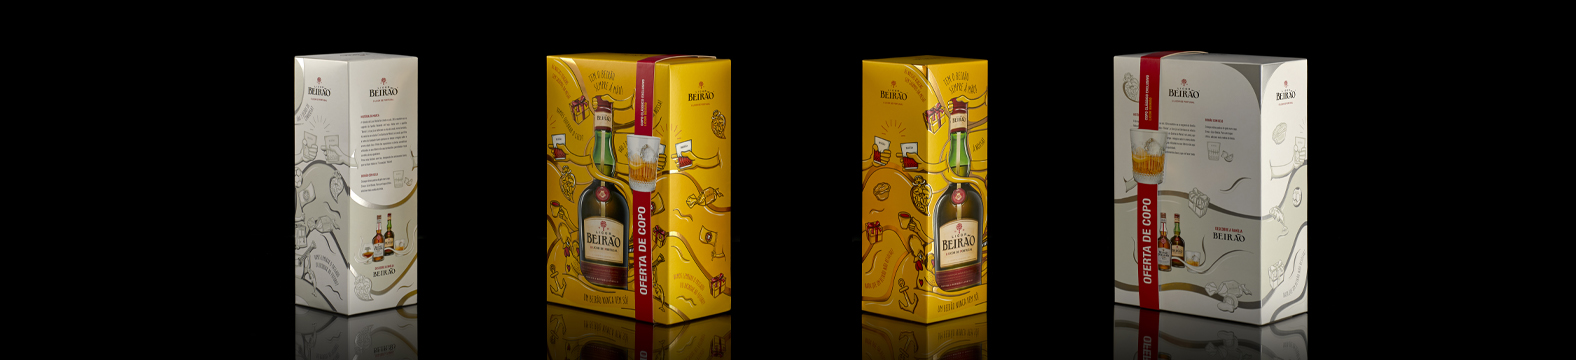 Omdesign creates special packaging for Licor Beirão's Christmas